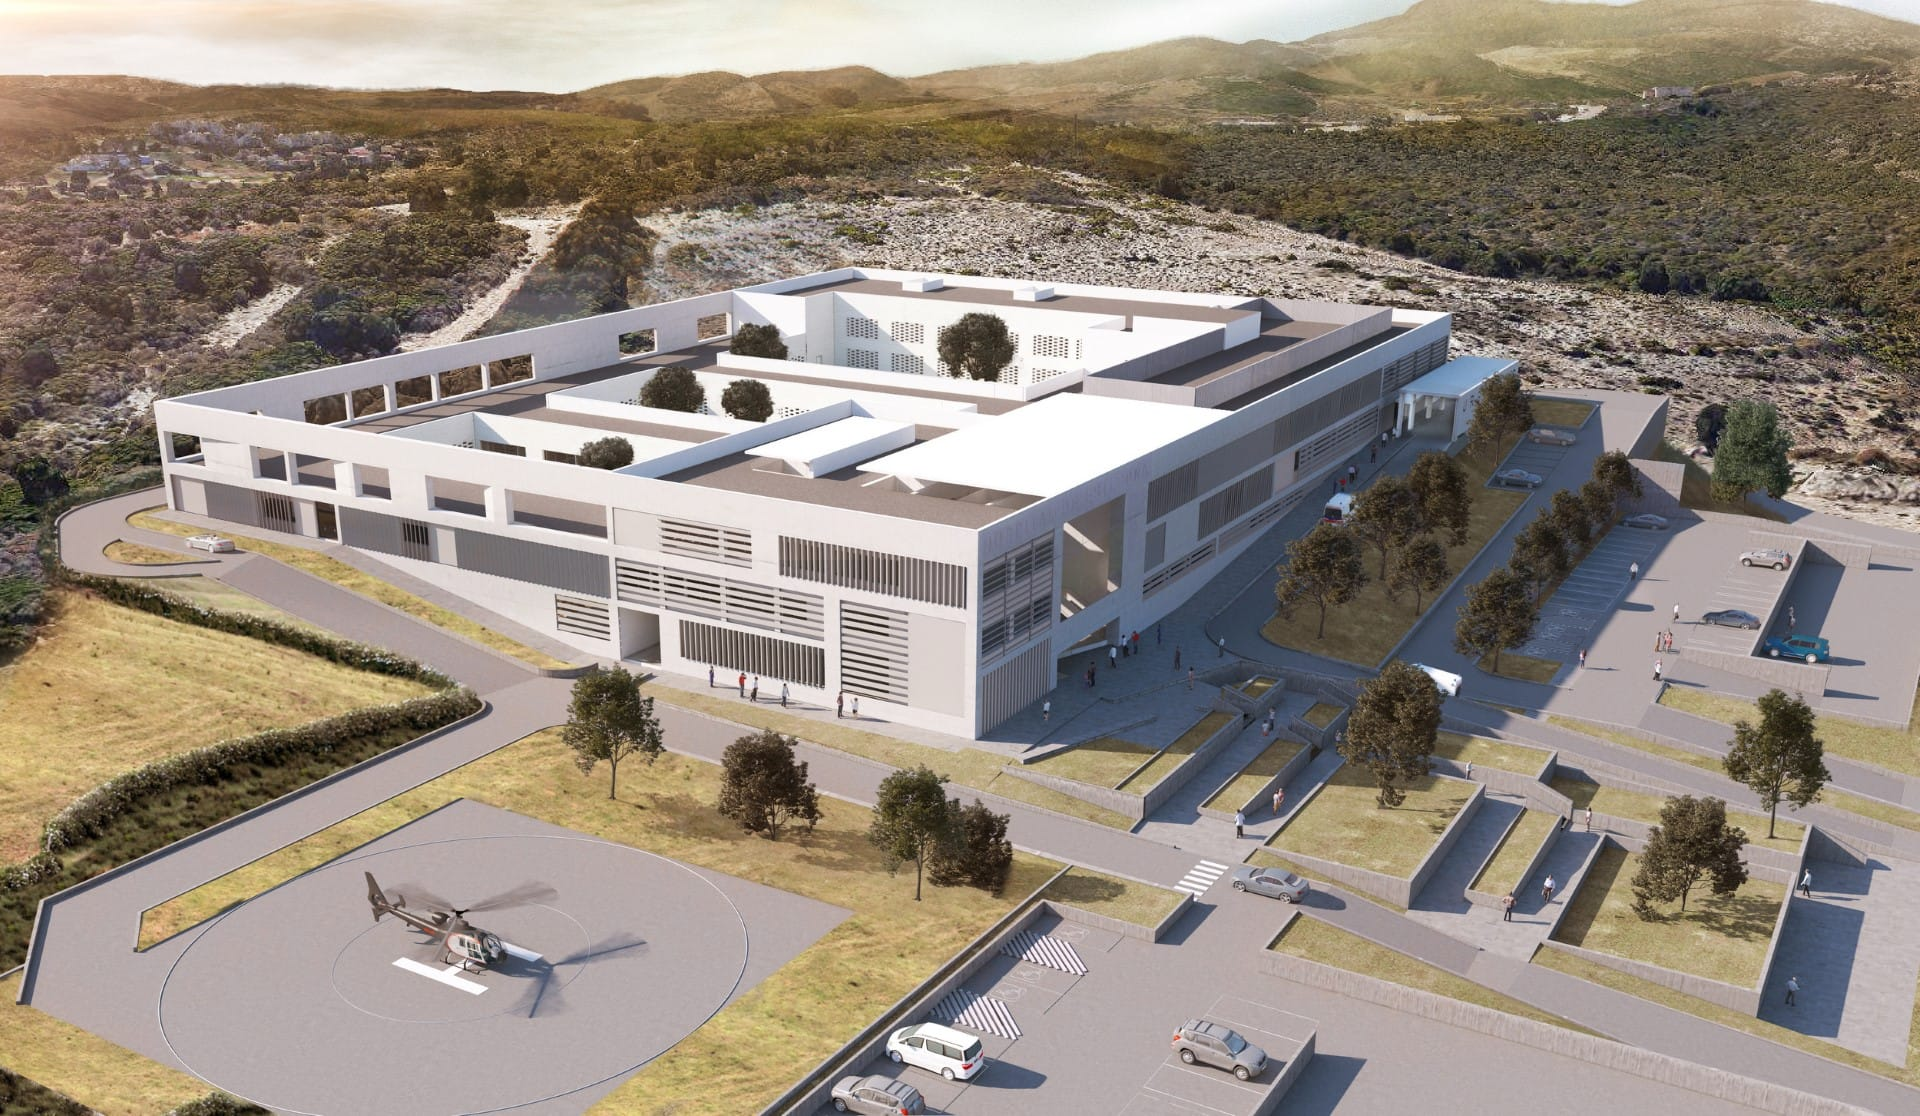 Estepona's new hospital